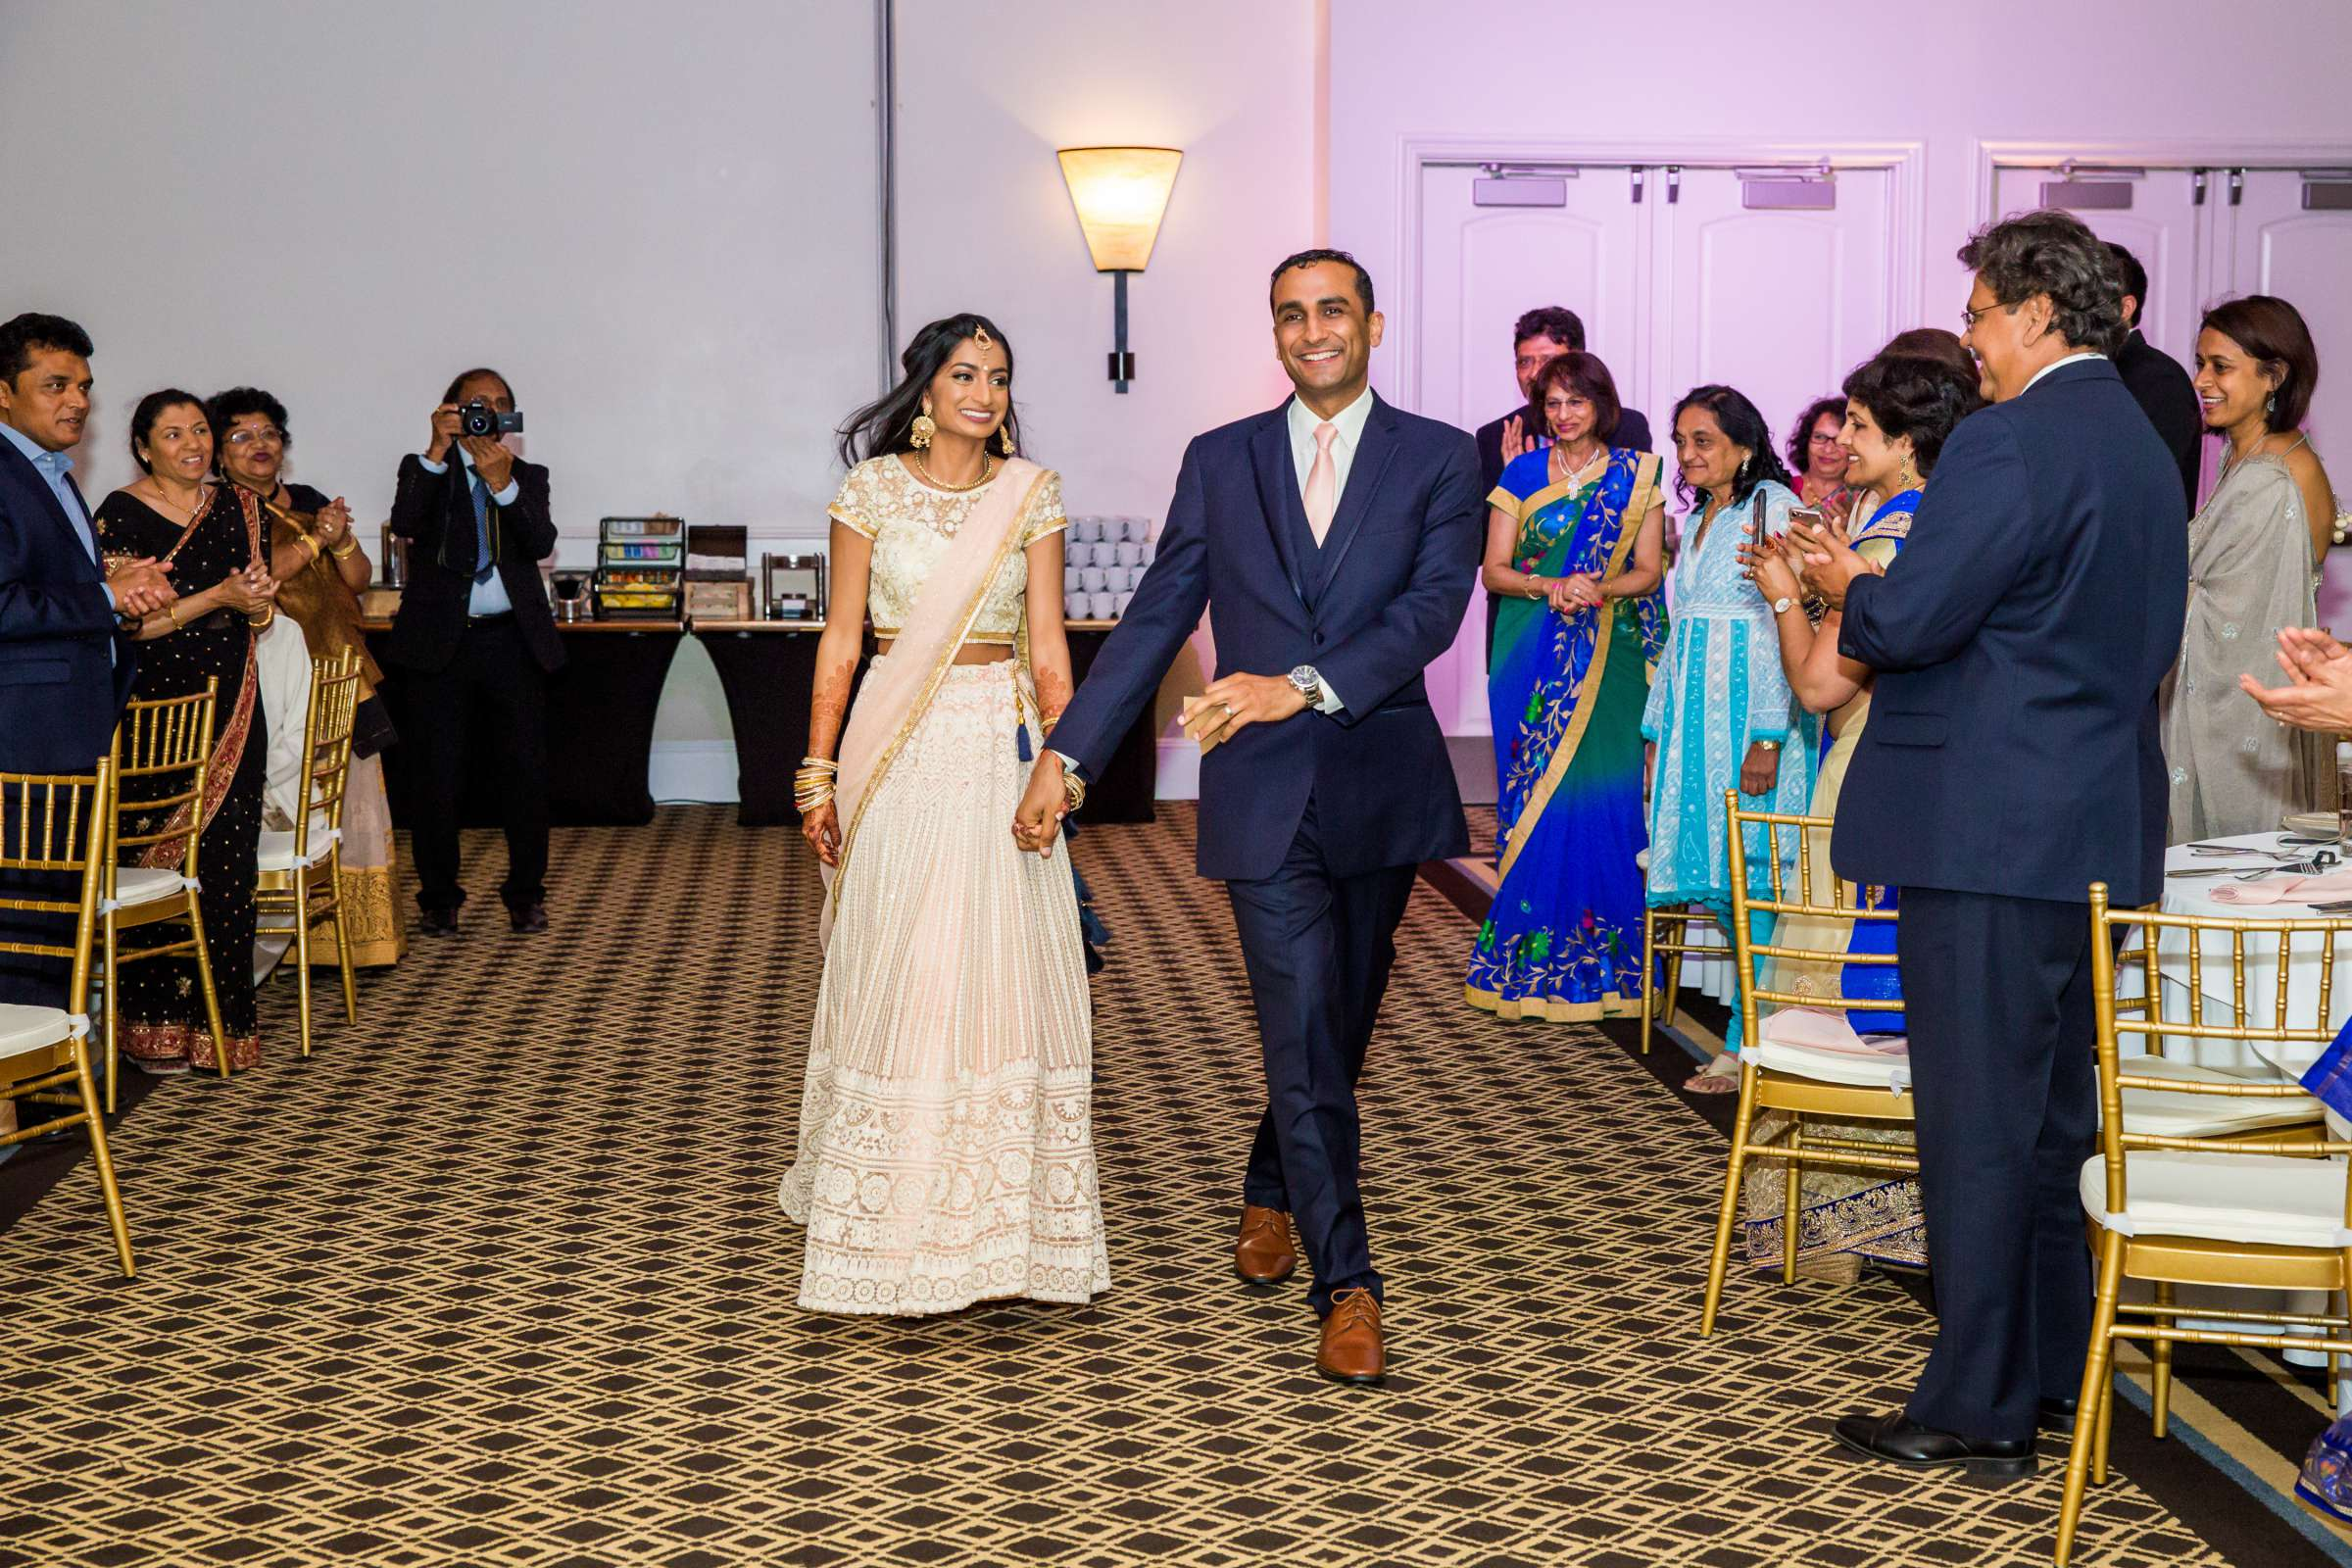 The Westin Carlsbad Resort and Spa Wedding coordinated by Shilpa Patel Events, Ami and Amit Wedding Photo #223 by True Photography